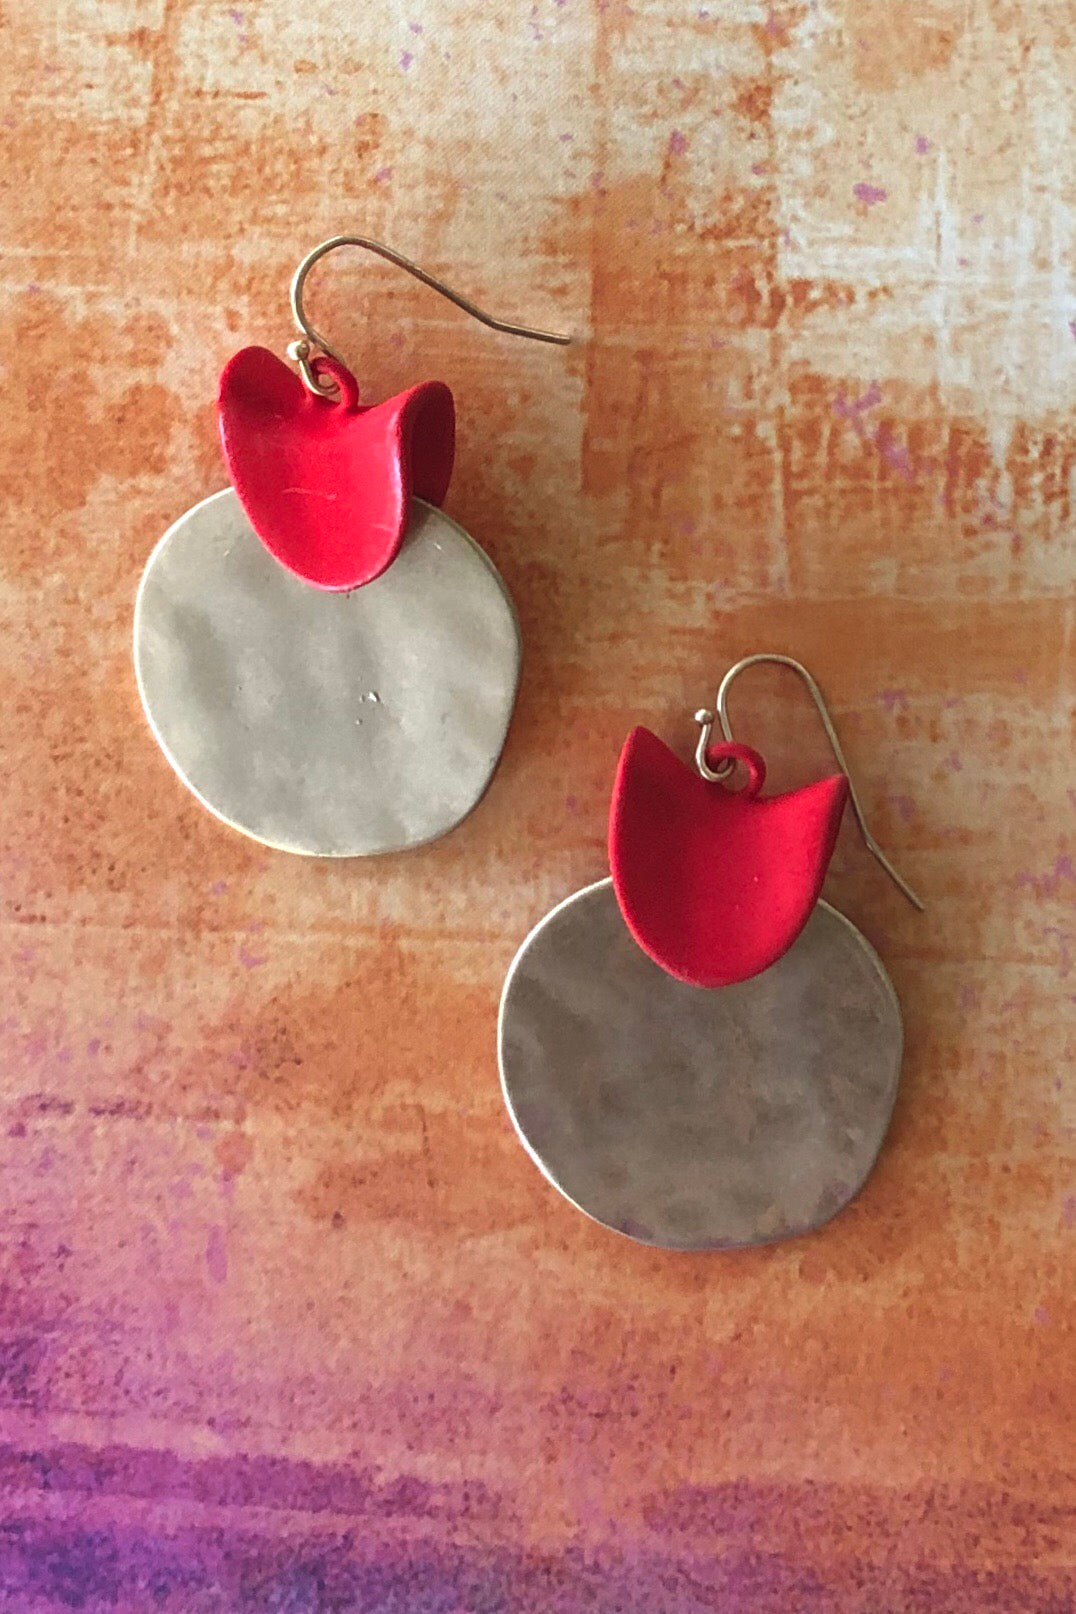 Earrings Lora Disc with Red Detail, 70's vintage style earrings